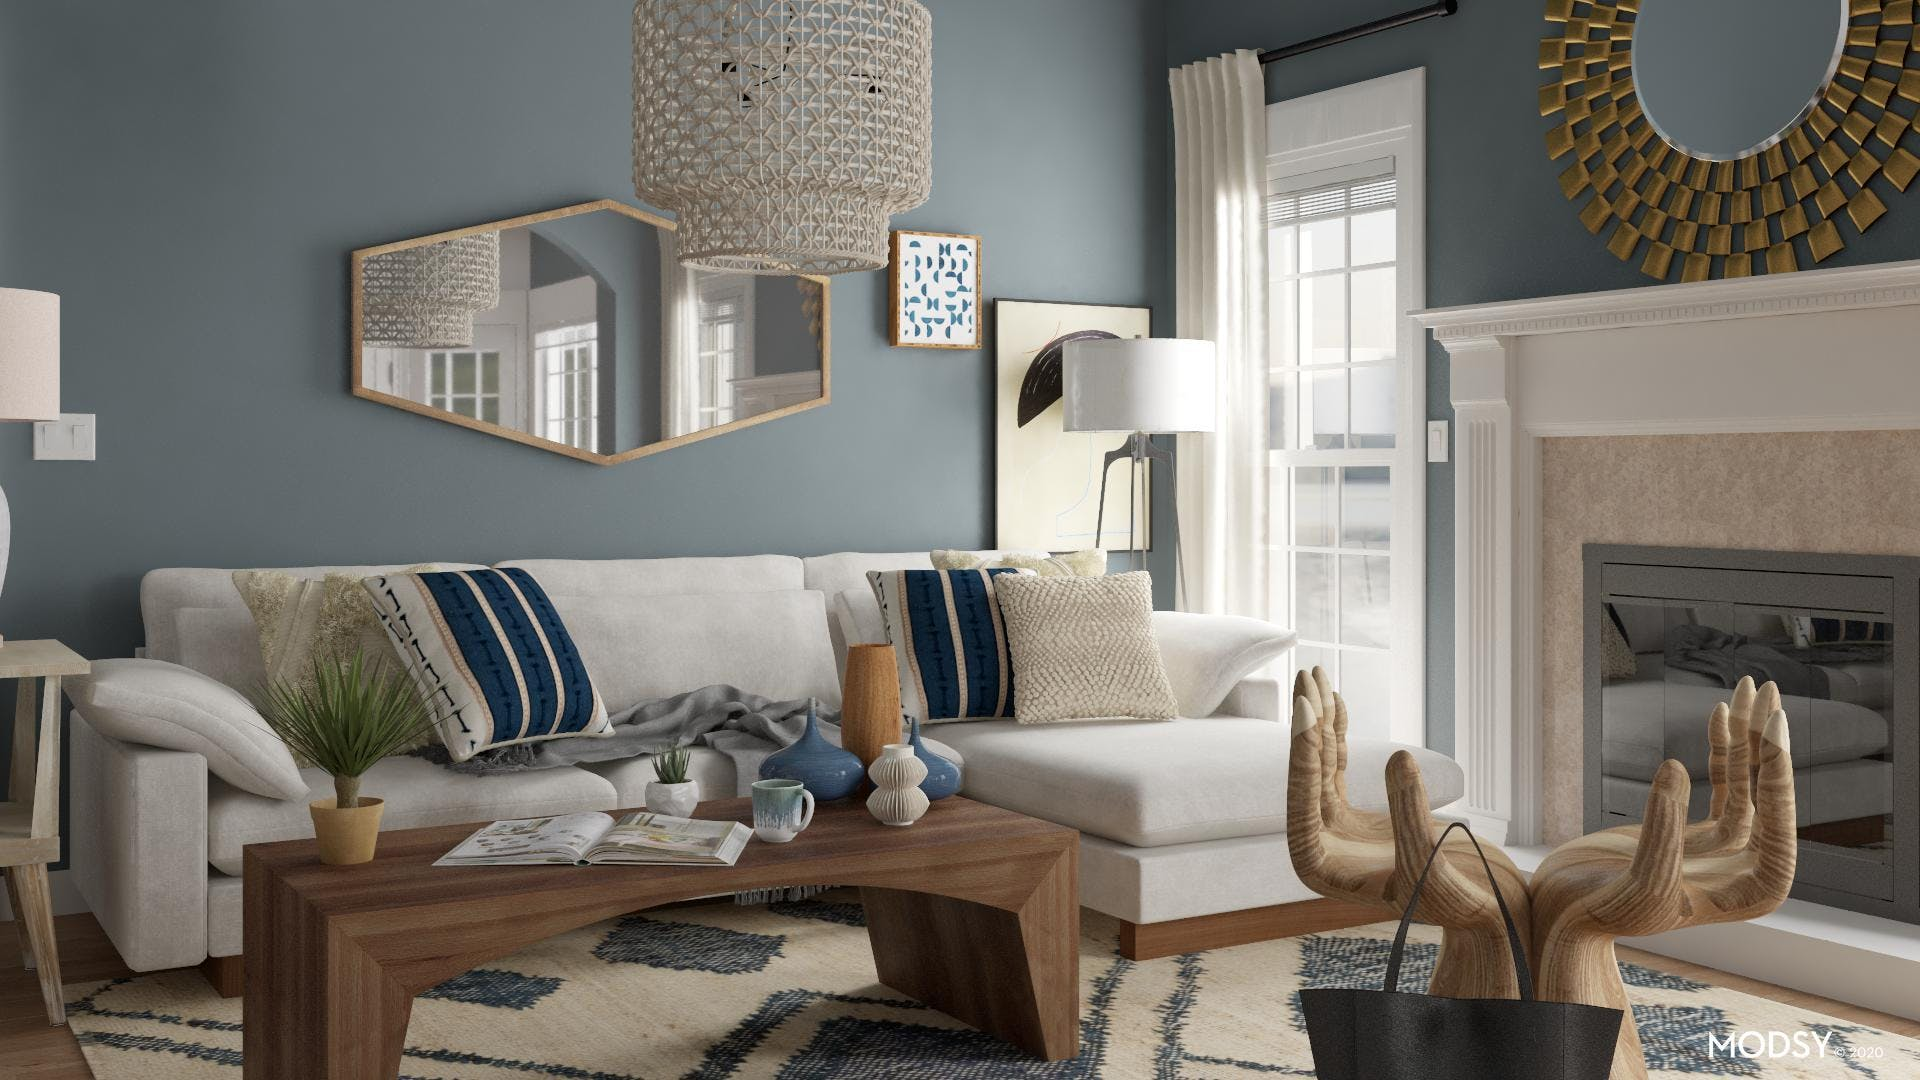 Having Fun With Eclectic: Living Room